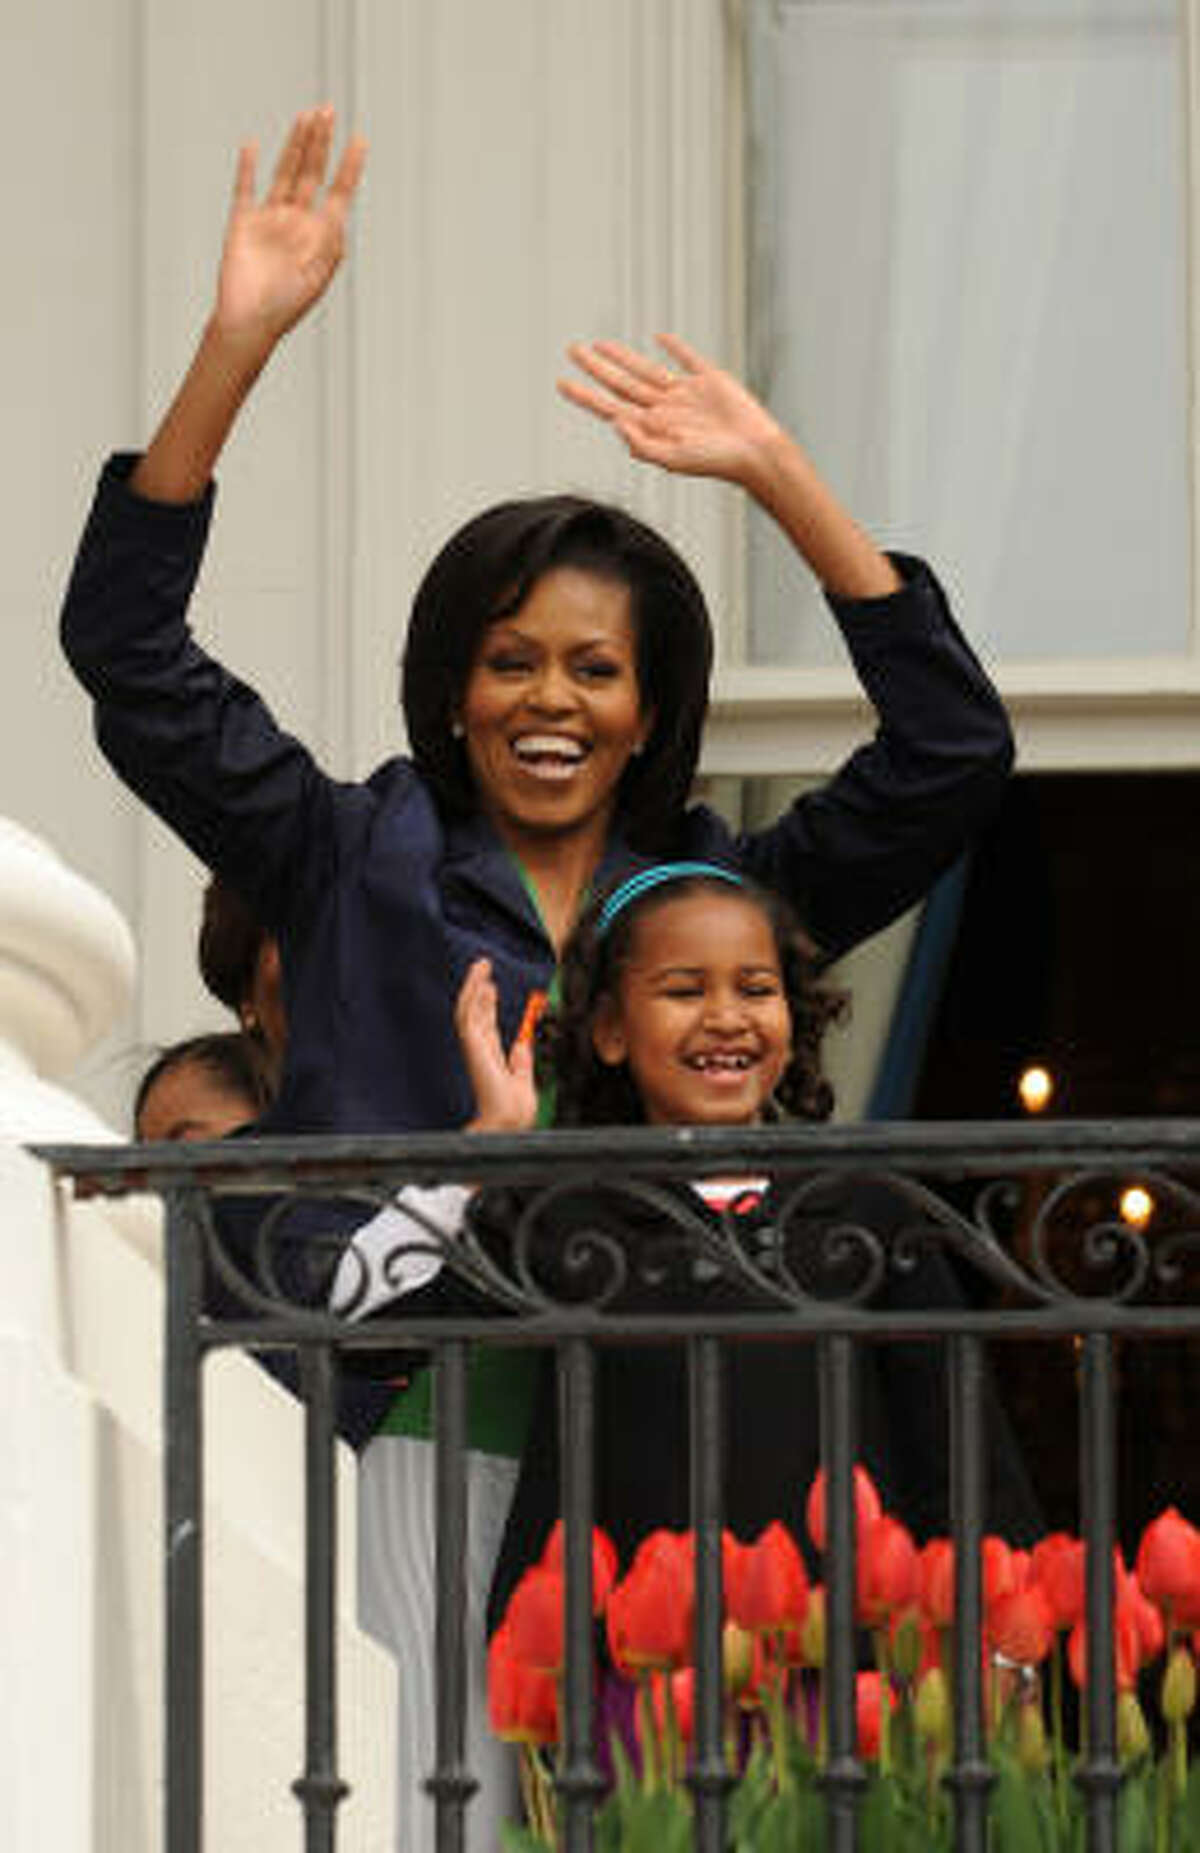 U.S. first lady Michelle Obama and her daughter Sasha Obama welcome people to the annual White House Easter Egg Roll on the South Lawn of the White House.